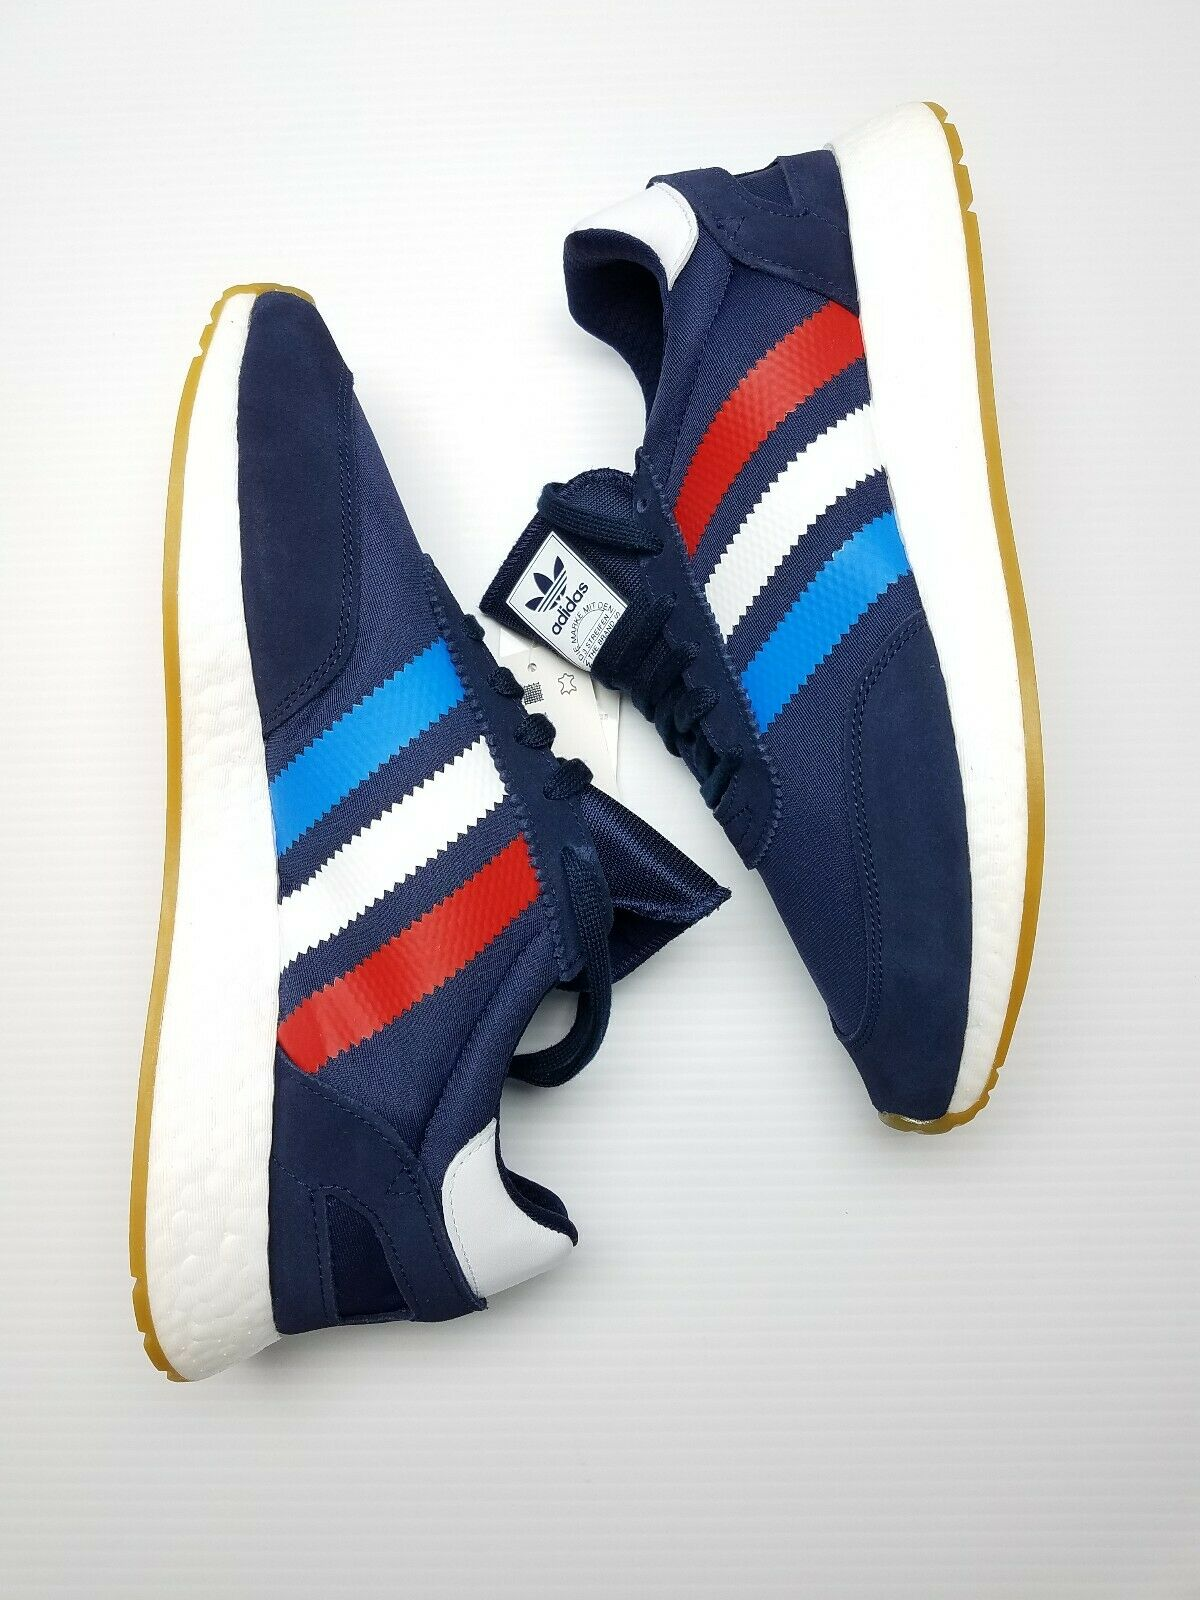 Adidas Original Mens I- 5923 shoes  Navy Red True bluee BD7814 New Sz 8.5